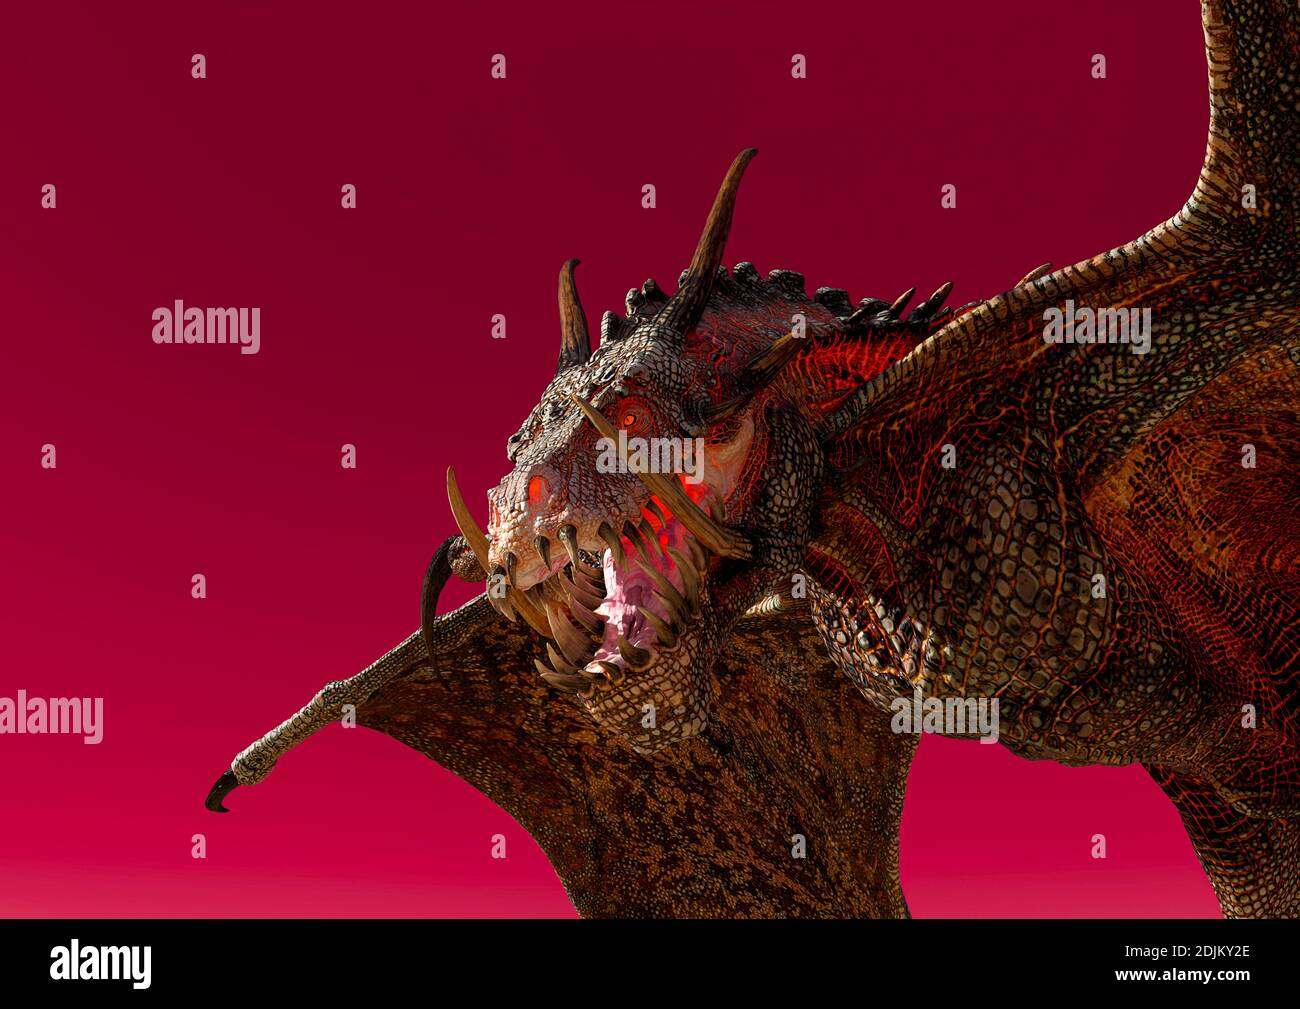 Flying Dragon Animal High Resolution Stock Photography And Images Page 7 Alamy